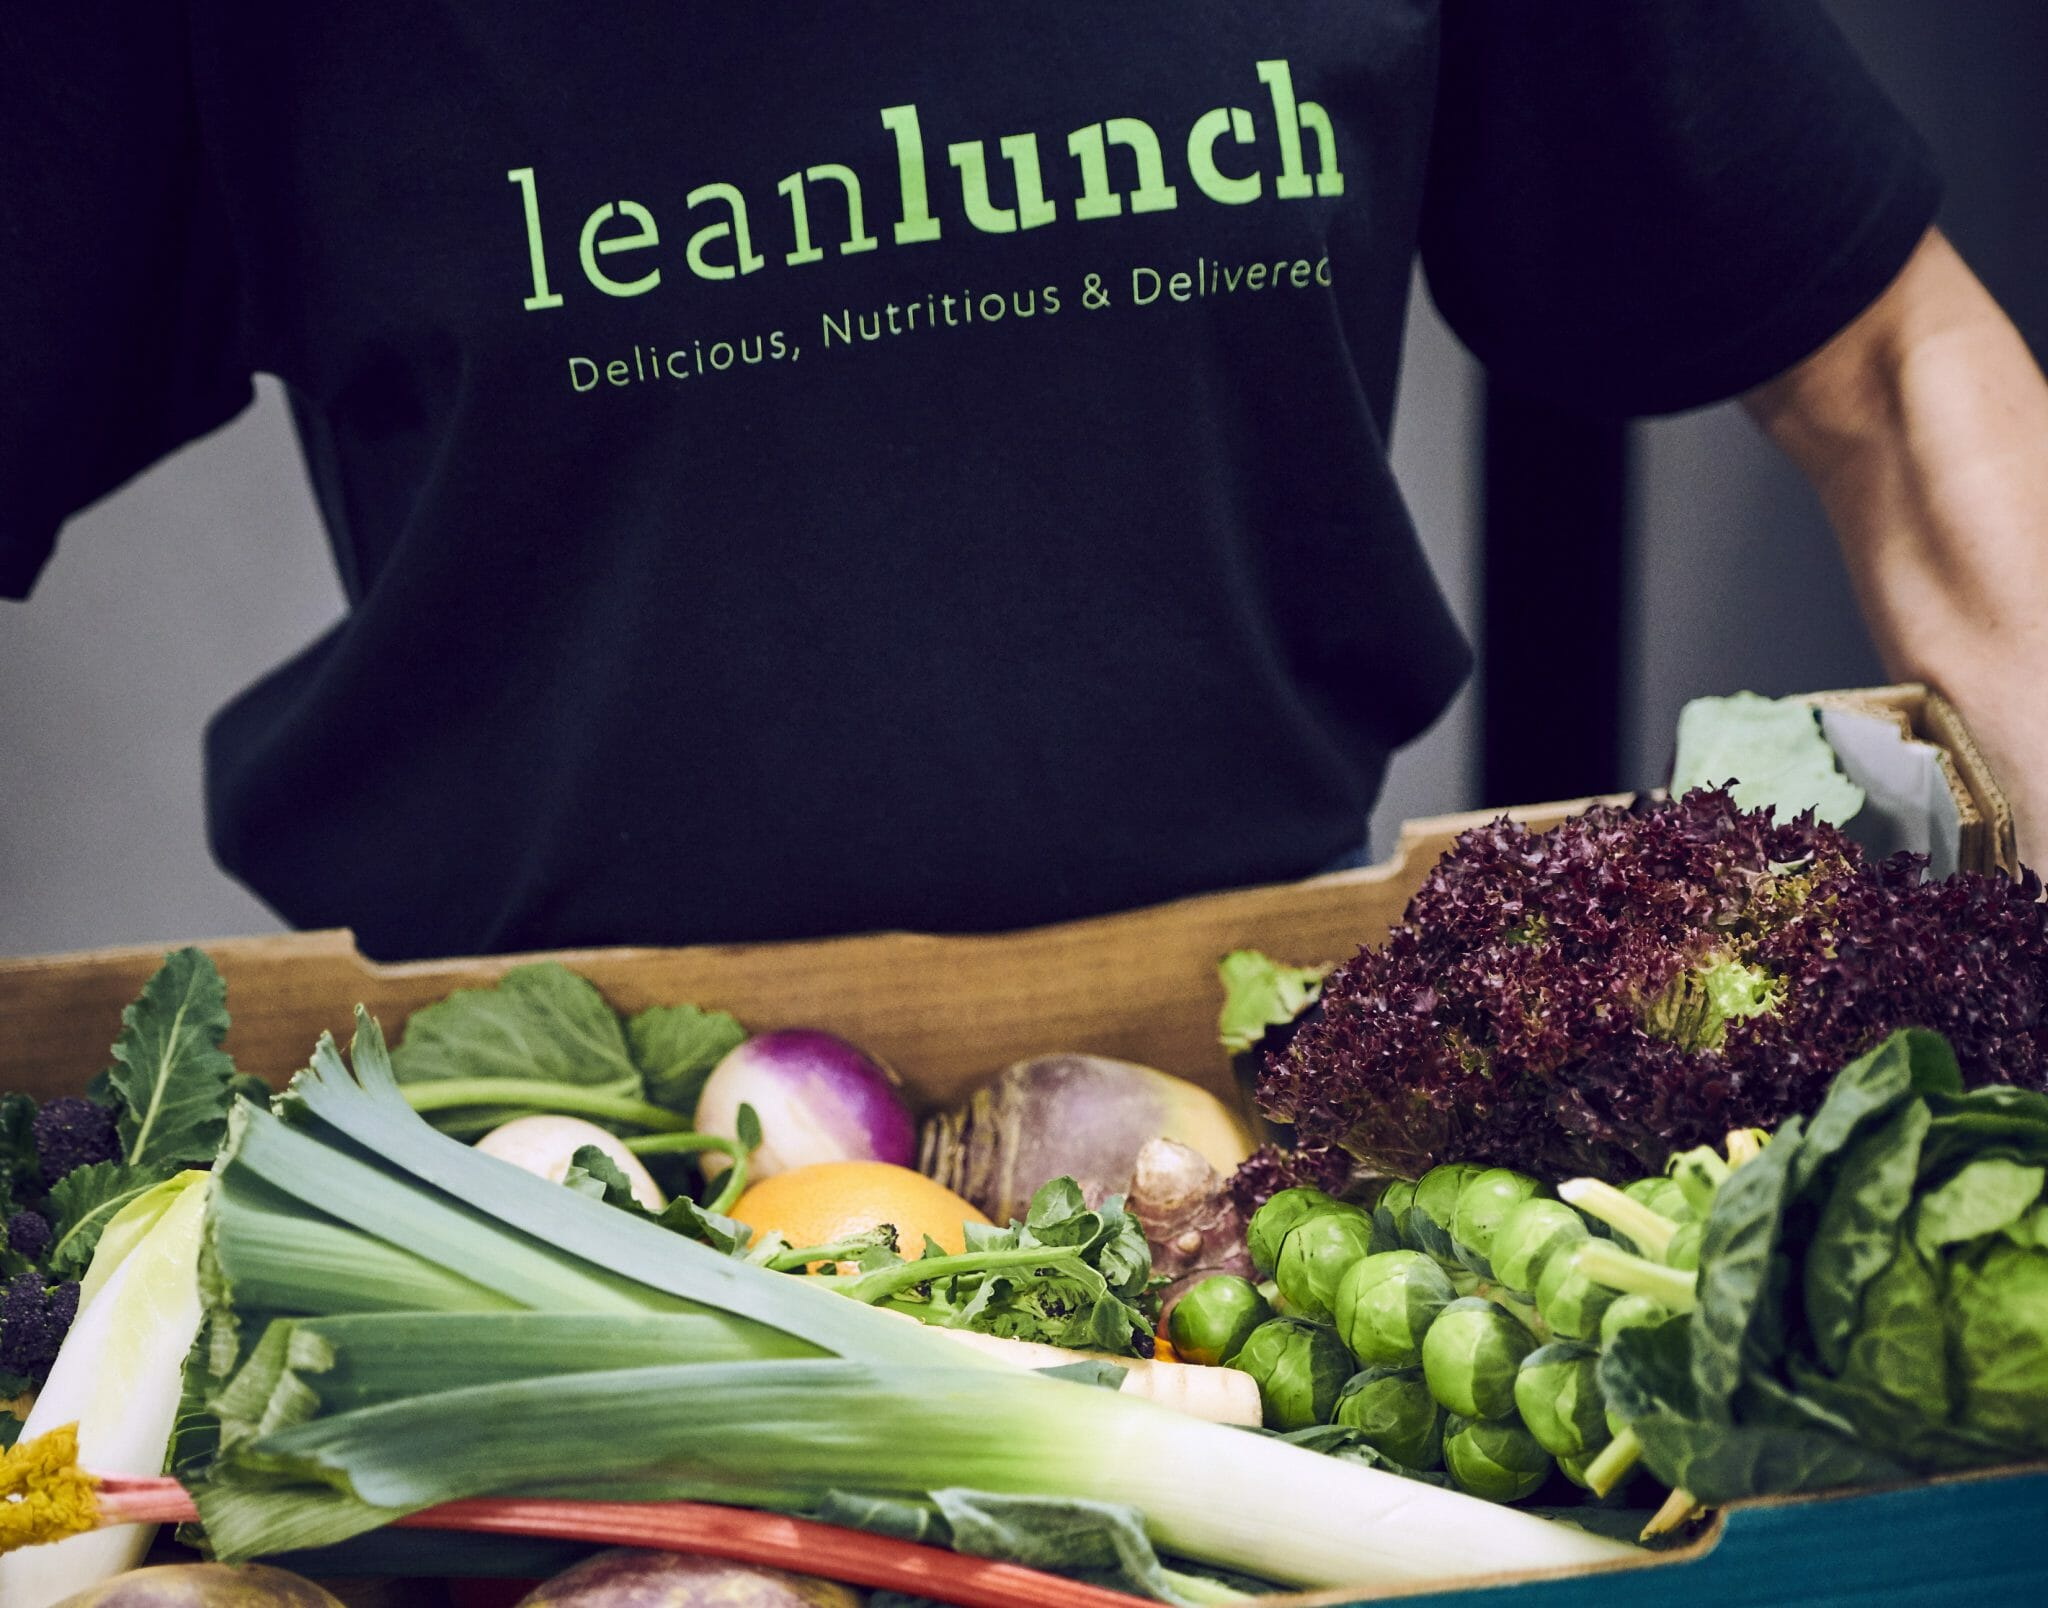 Wellness at work: Eating clean and hassle free with Lean Lunch